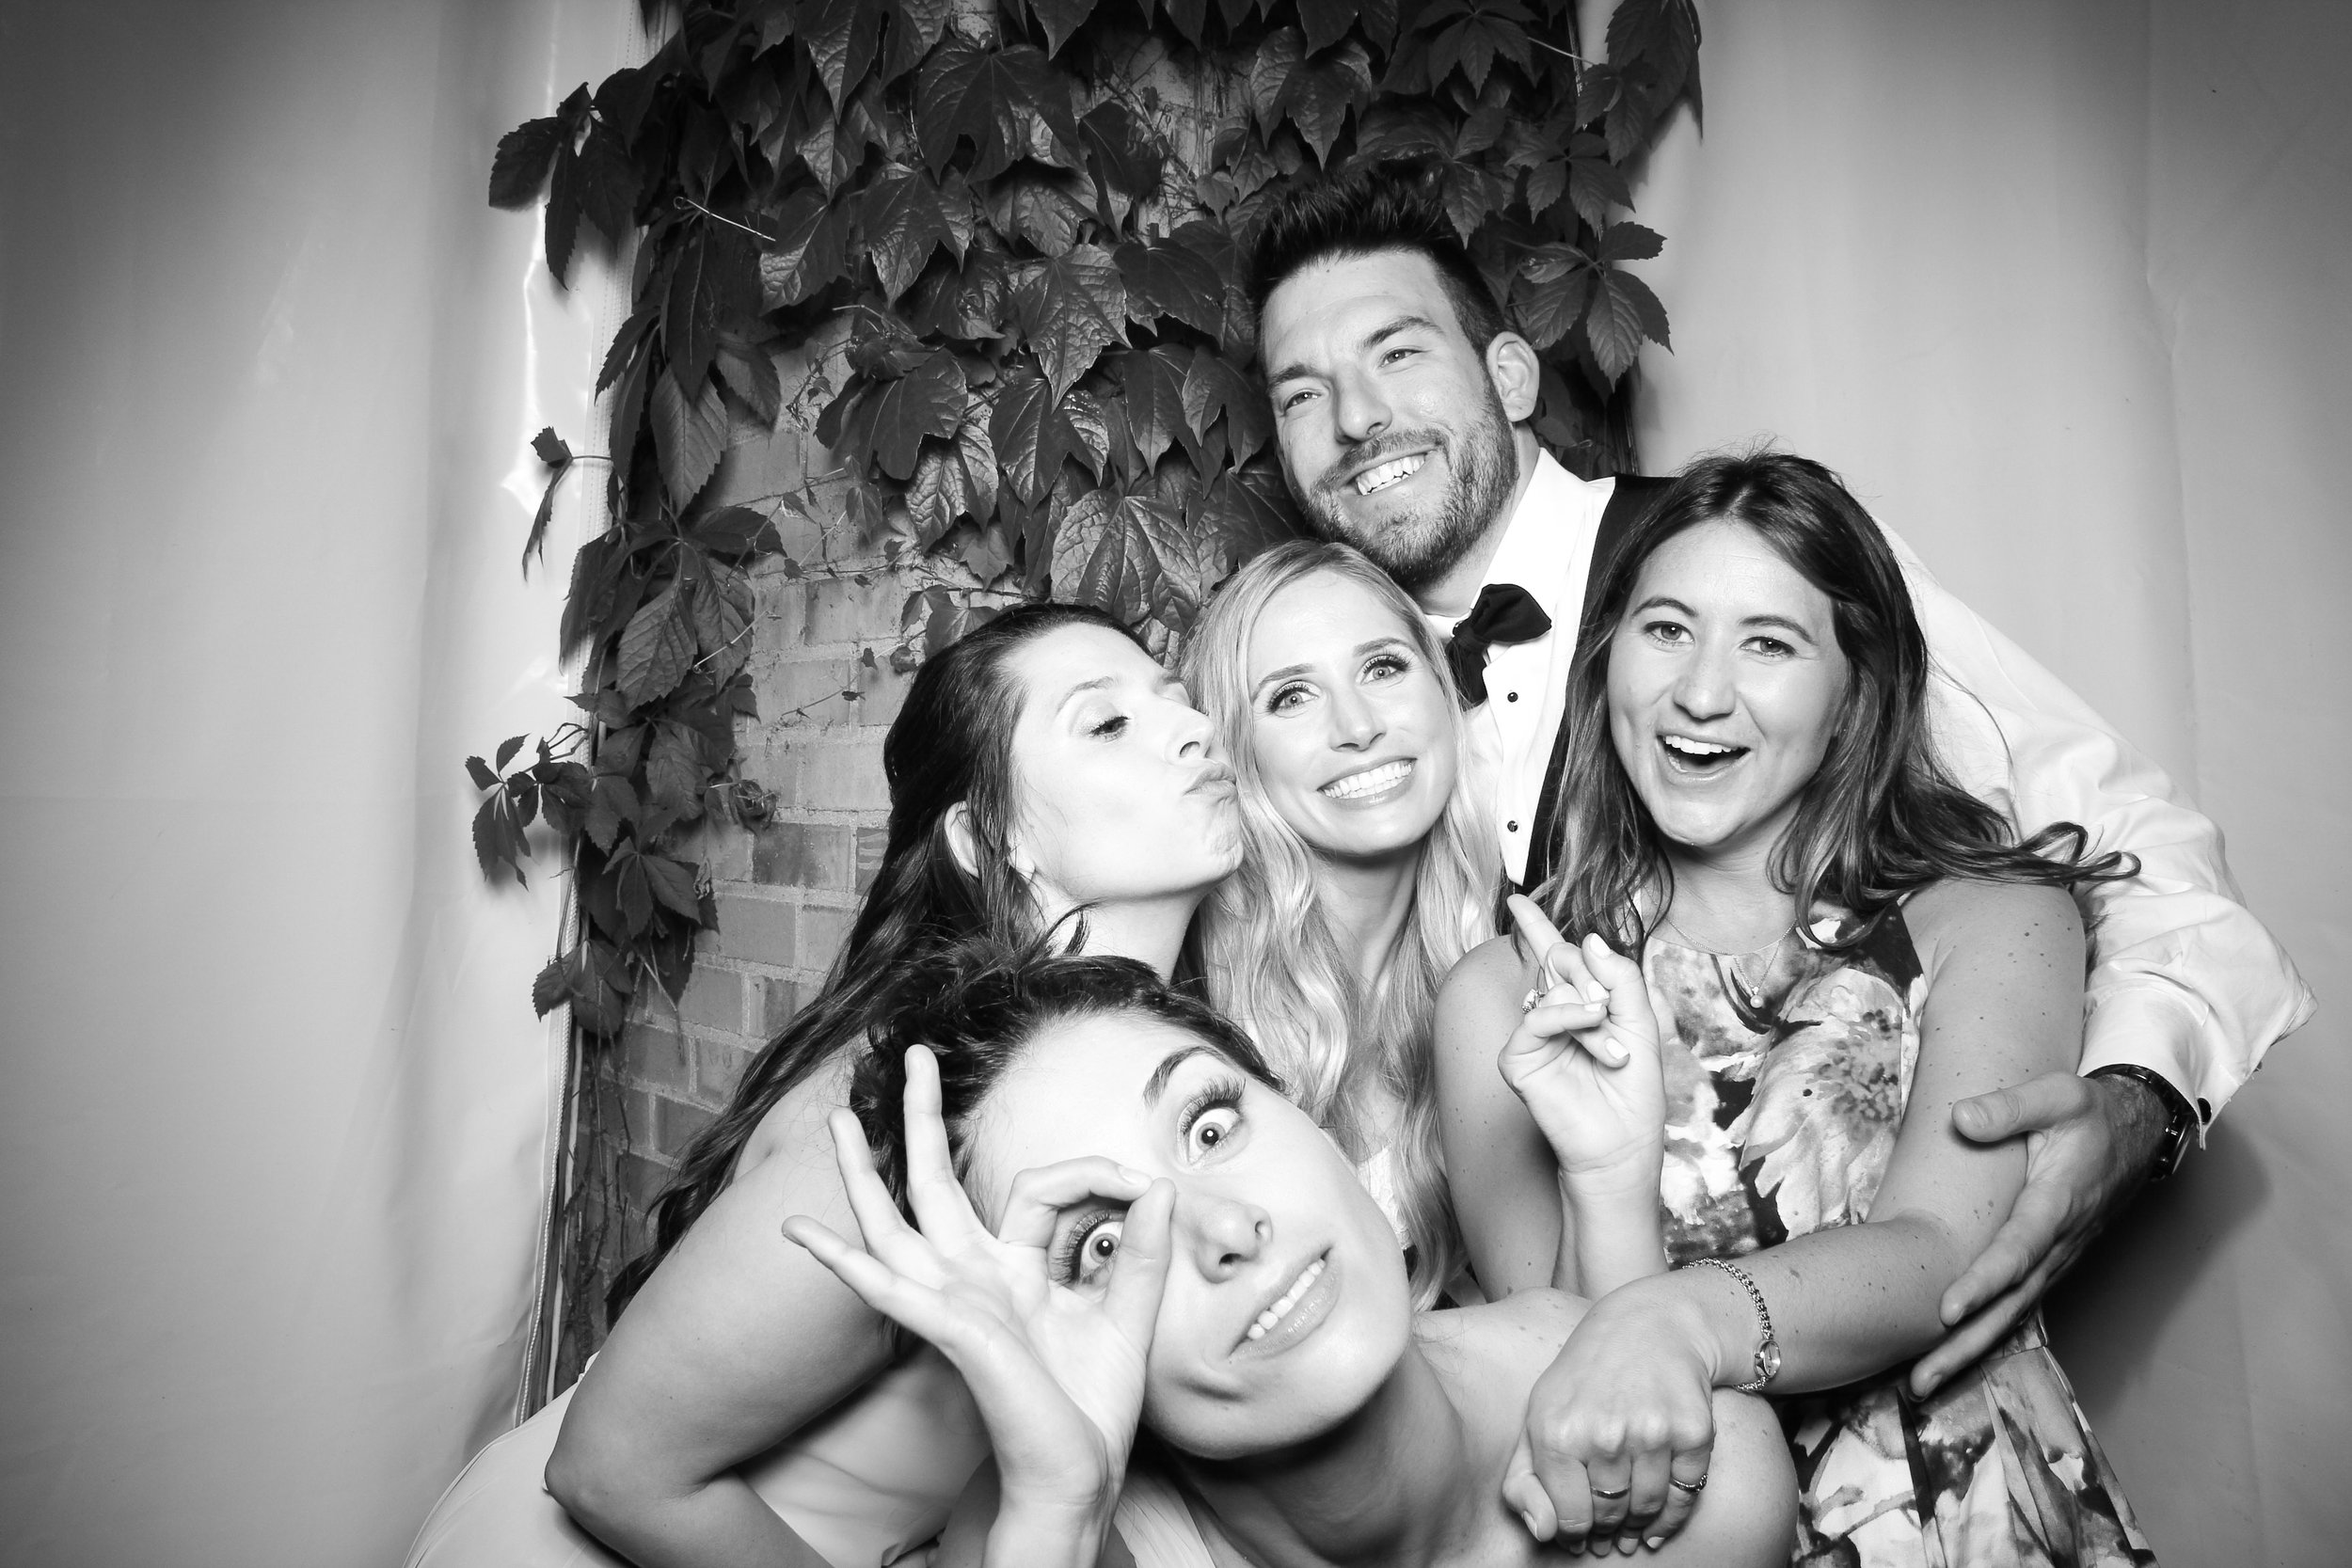 Chicago_Vintage_Wedding_Photobooth_Botanic_Garden_32.jpg